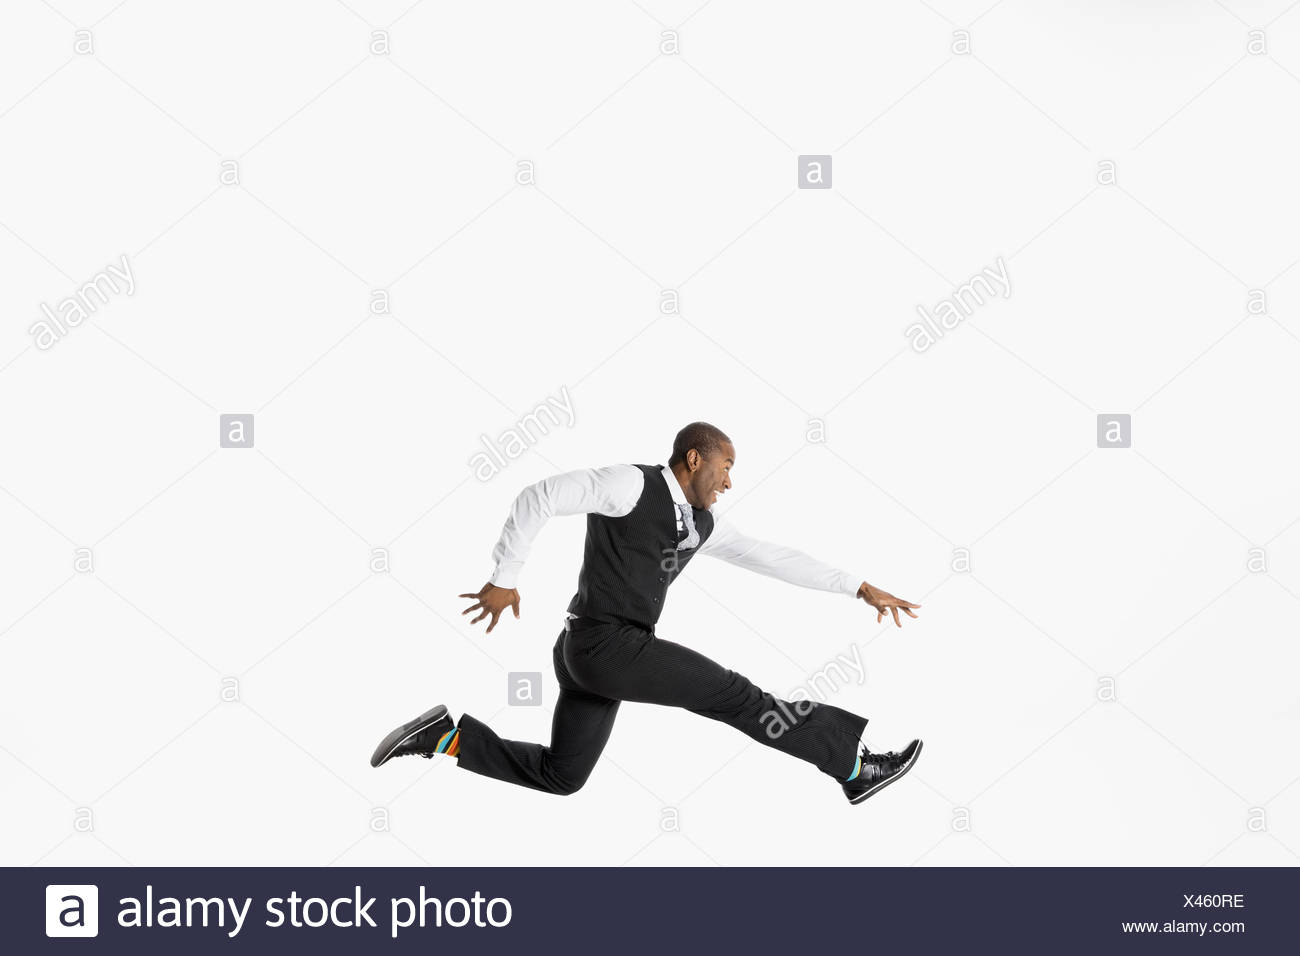 Exuberant businessman running and jumping against white background - Stock Image